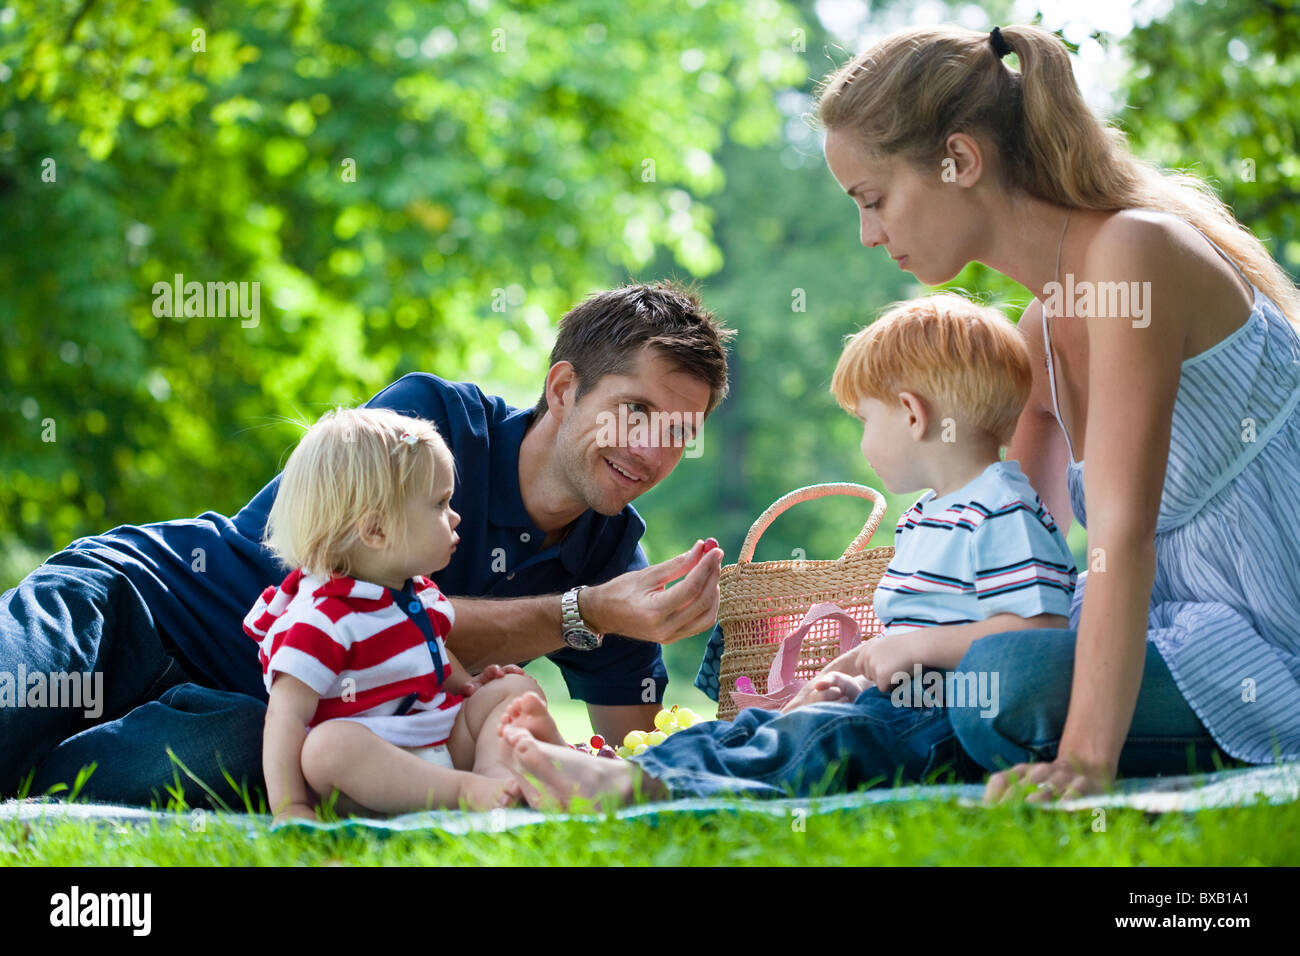 Mid adult parents with children on picnic - Stock Image